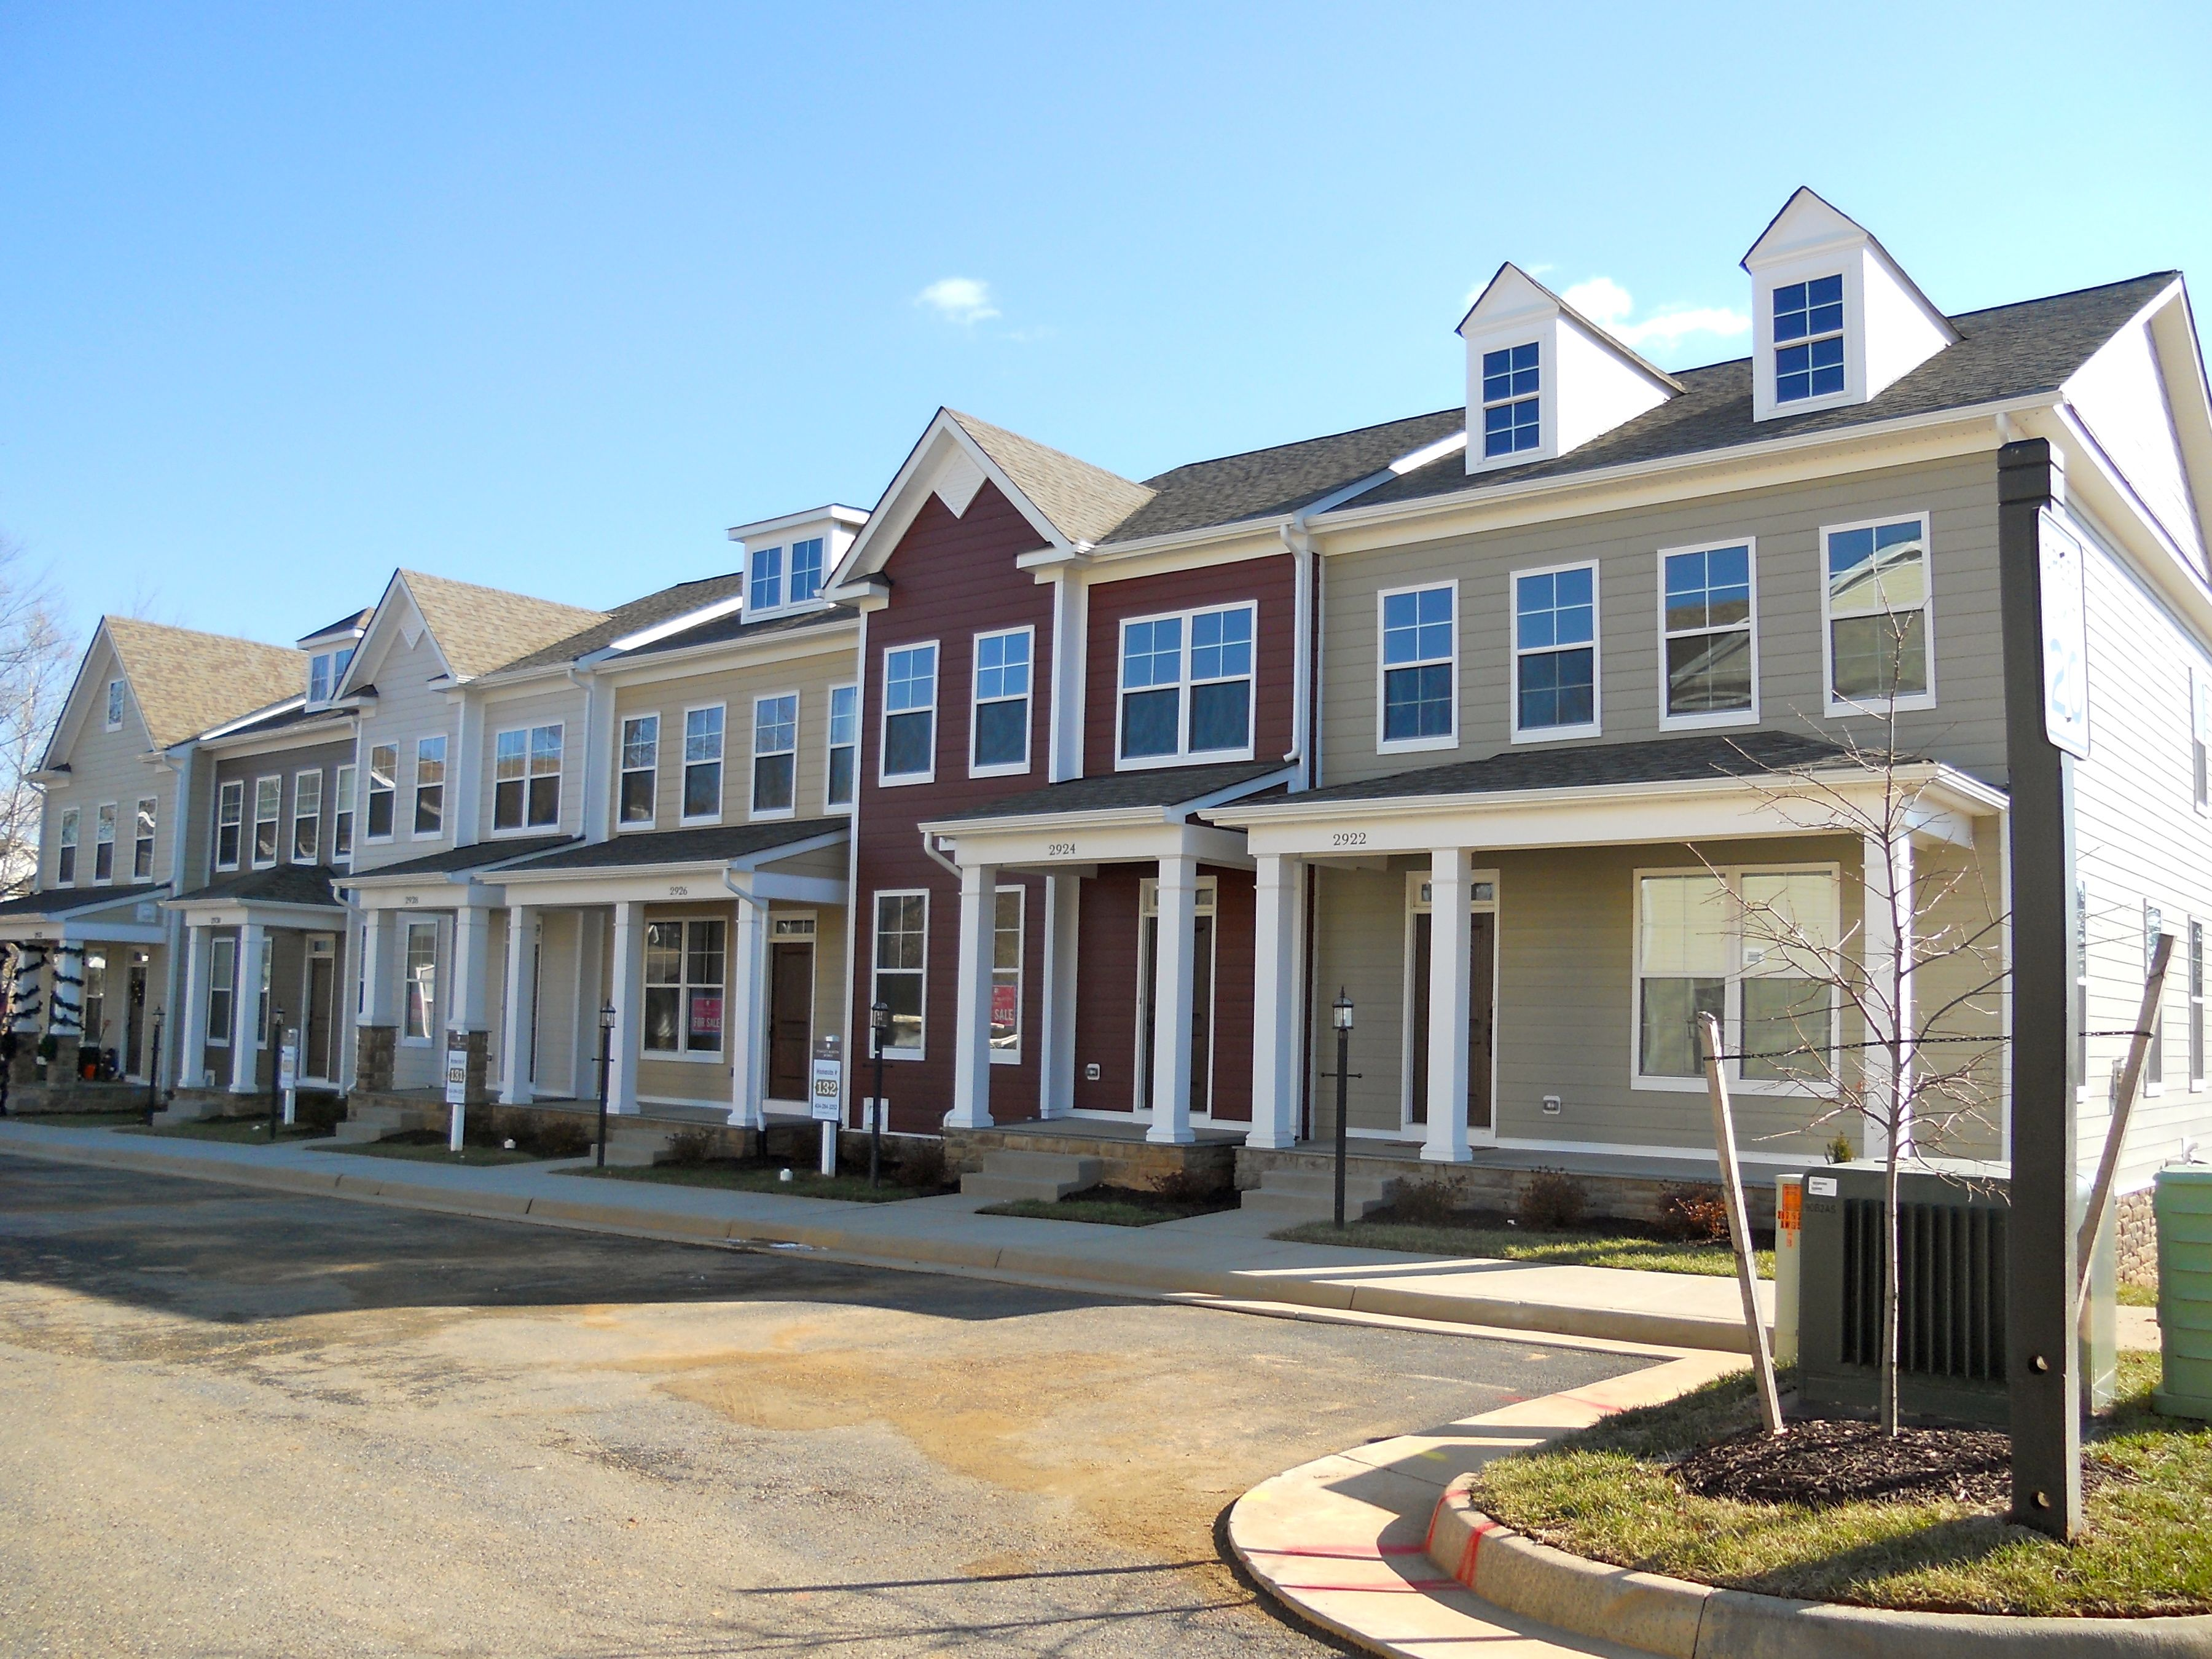 Three Story Townhomes For Sale In Charlottesville Va